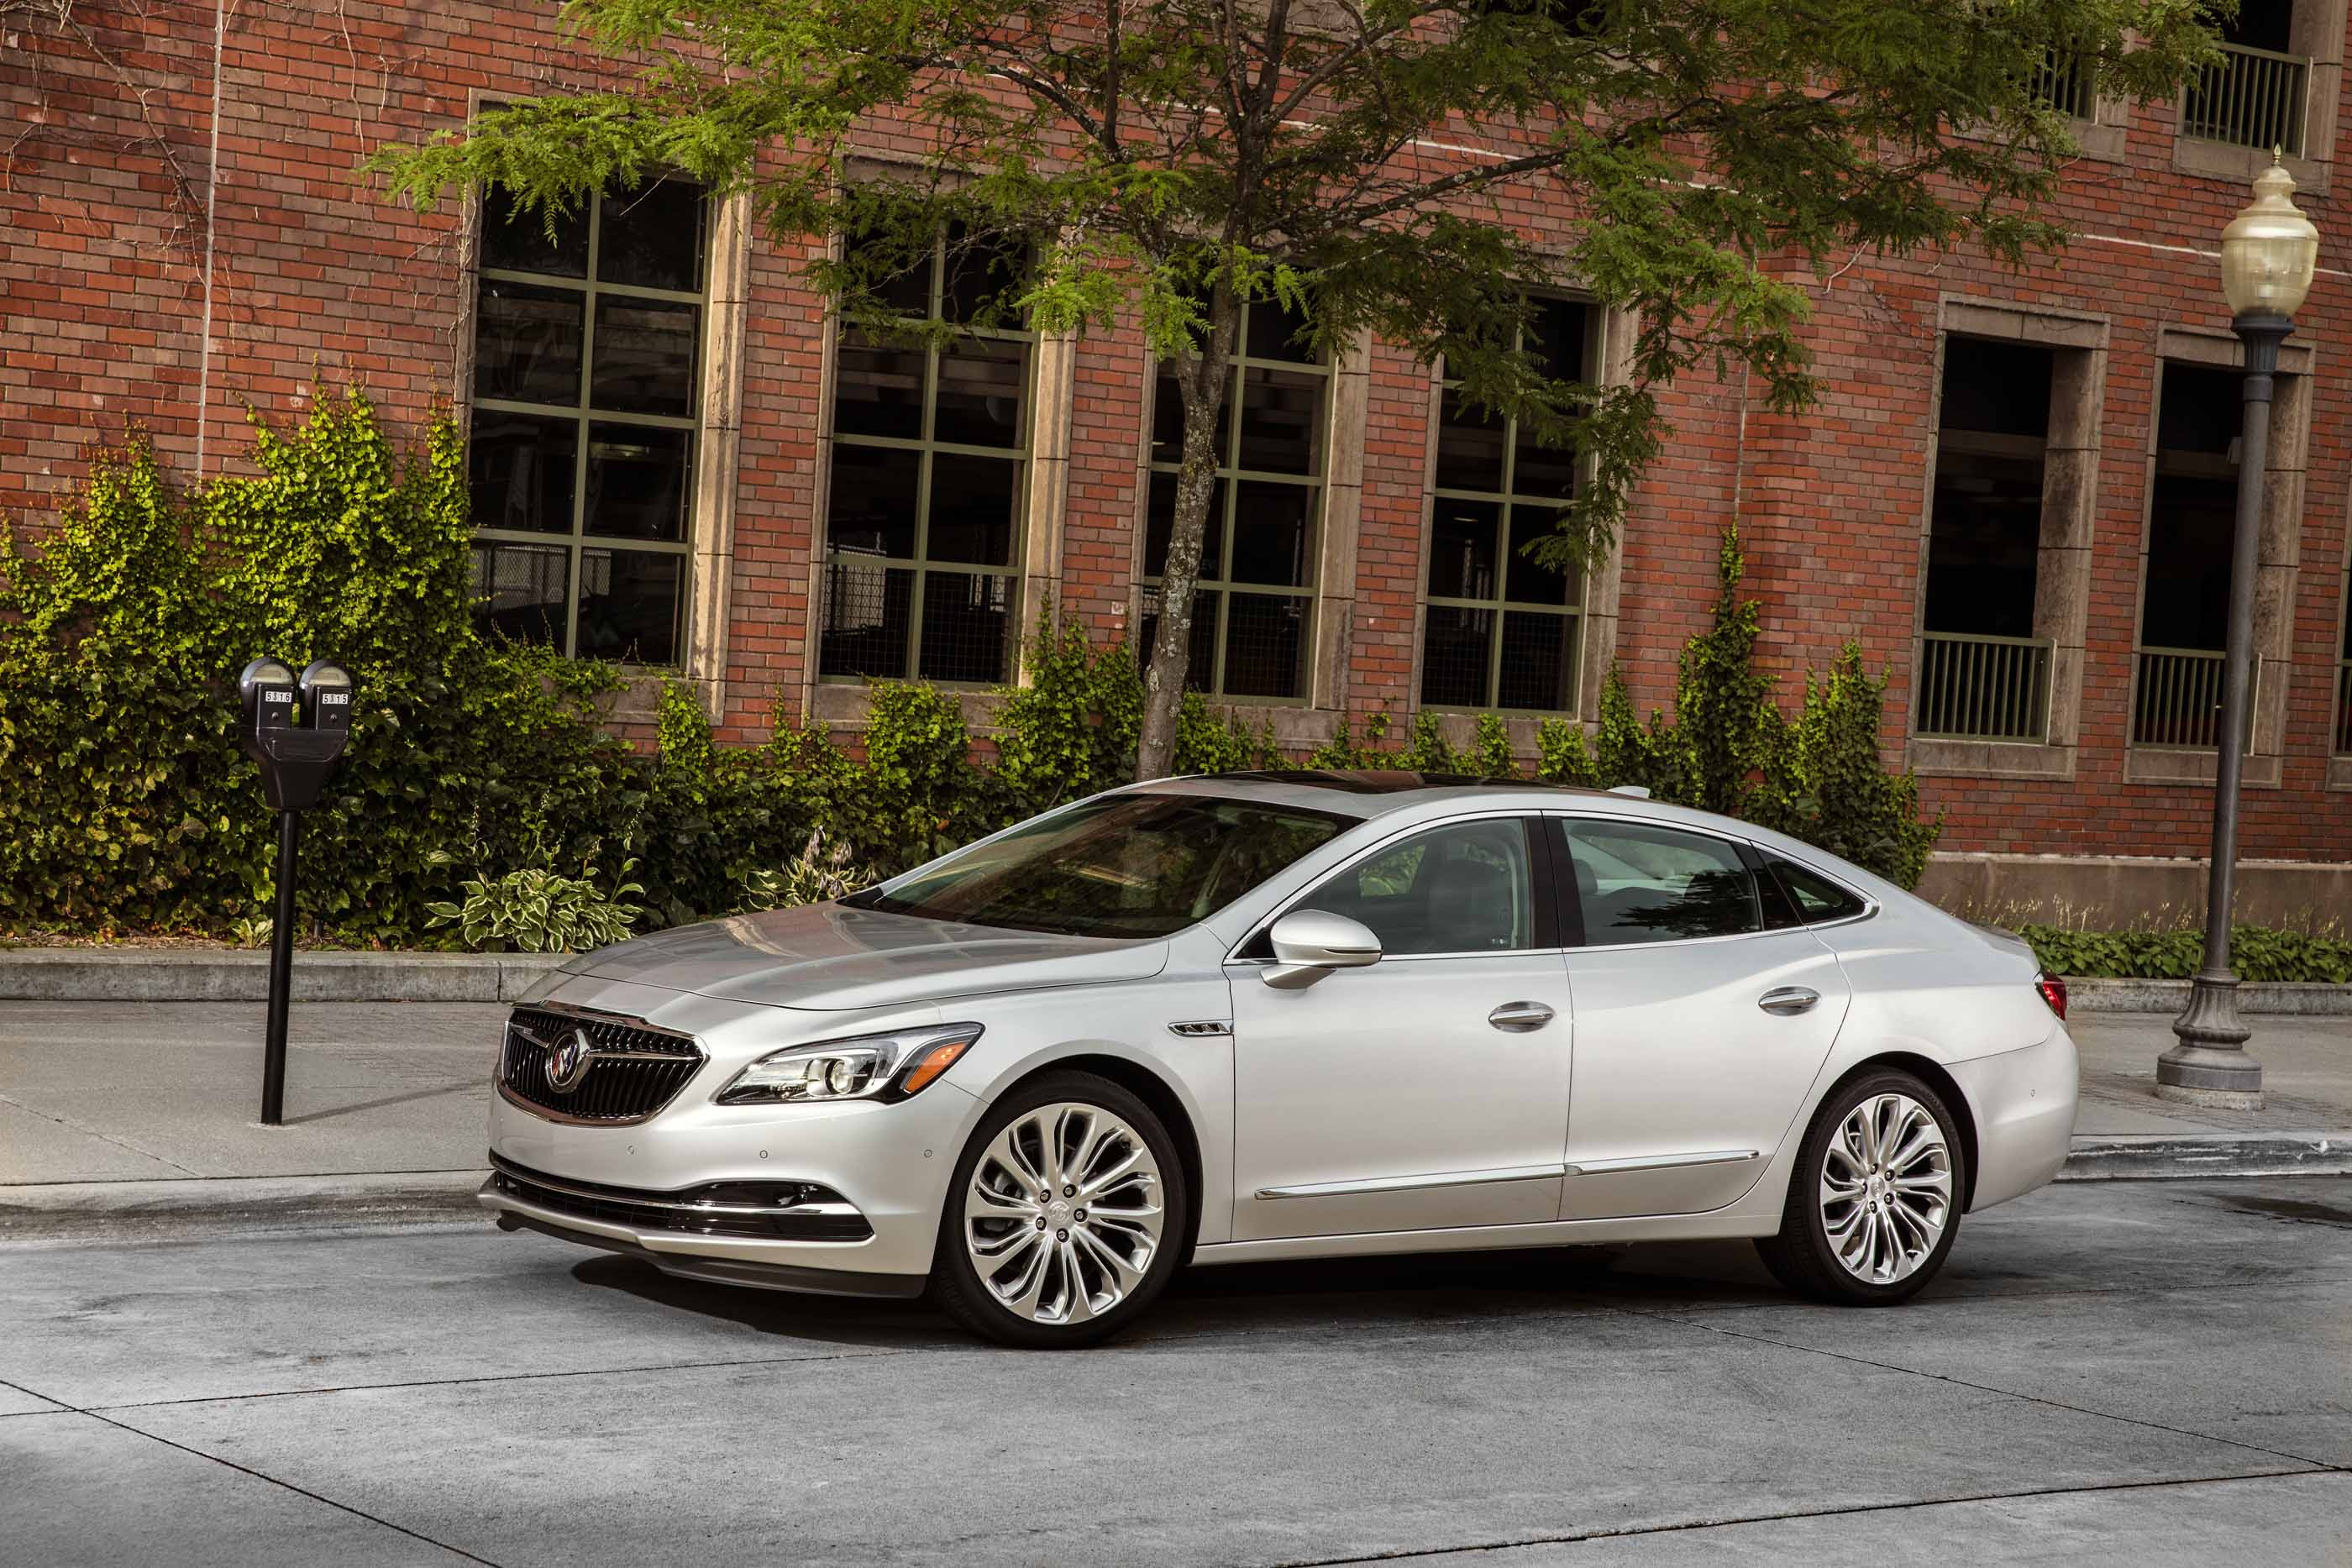 2017 Buick Lacrosse Safety Review and Crash Test Ratings ...